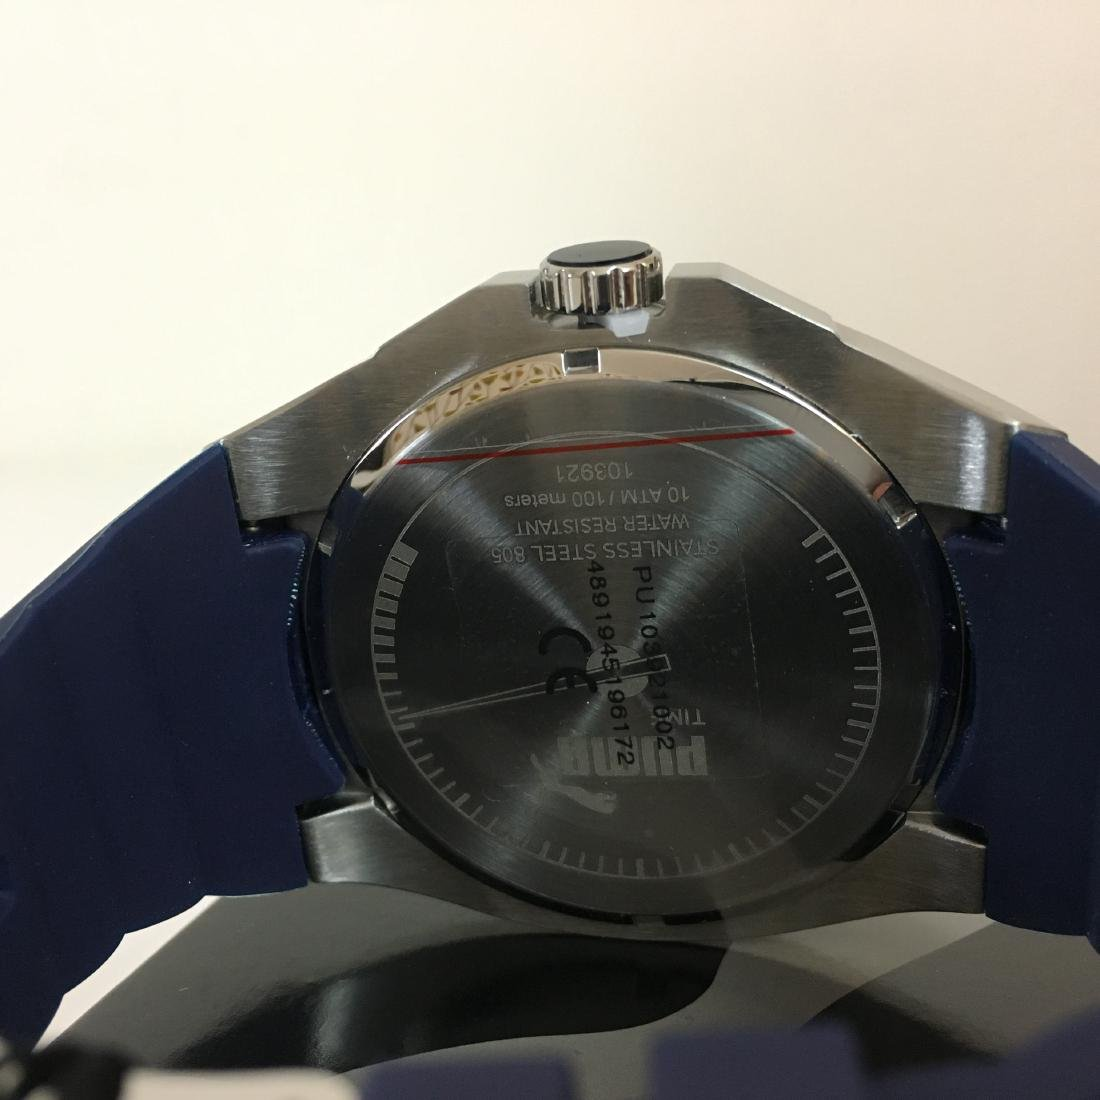 PUMA Iconic Blue Silicone Display Watch With Box - 7